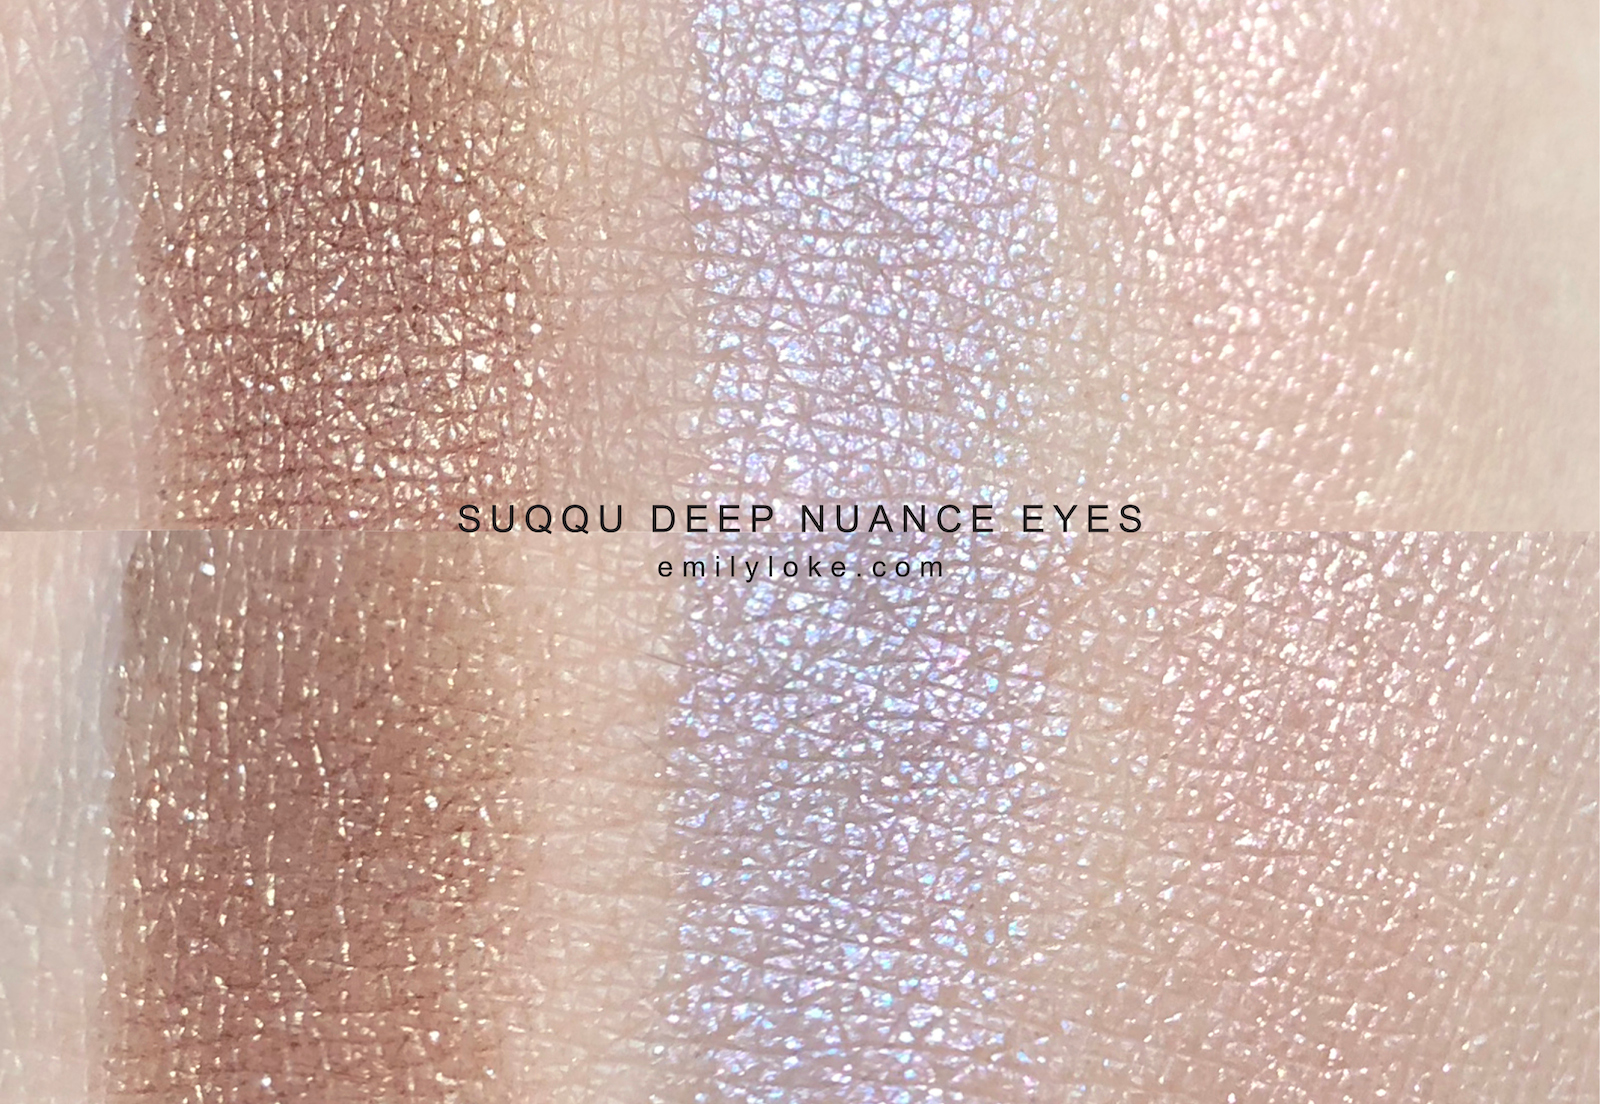 suqqu deep nuance eyes 102 103 104